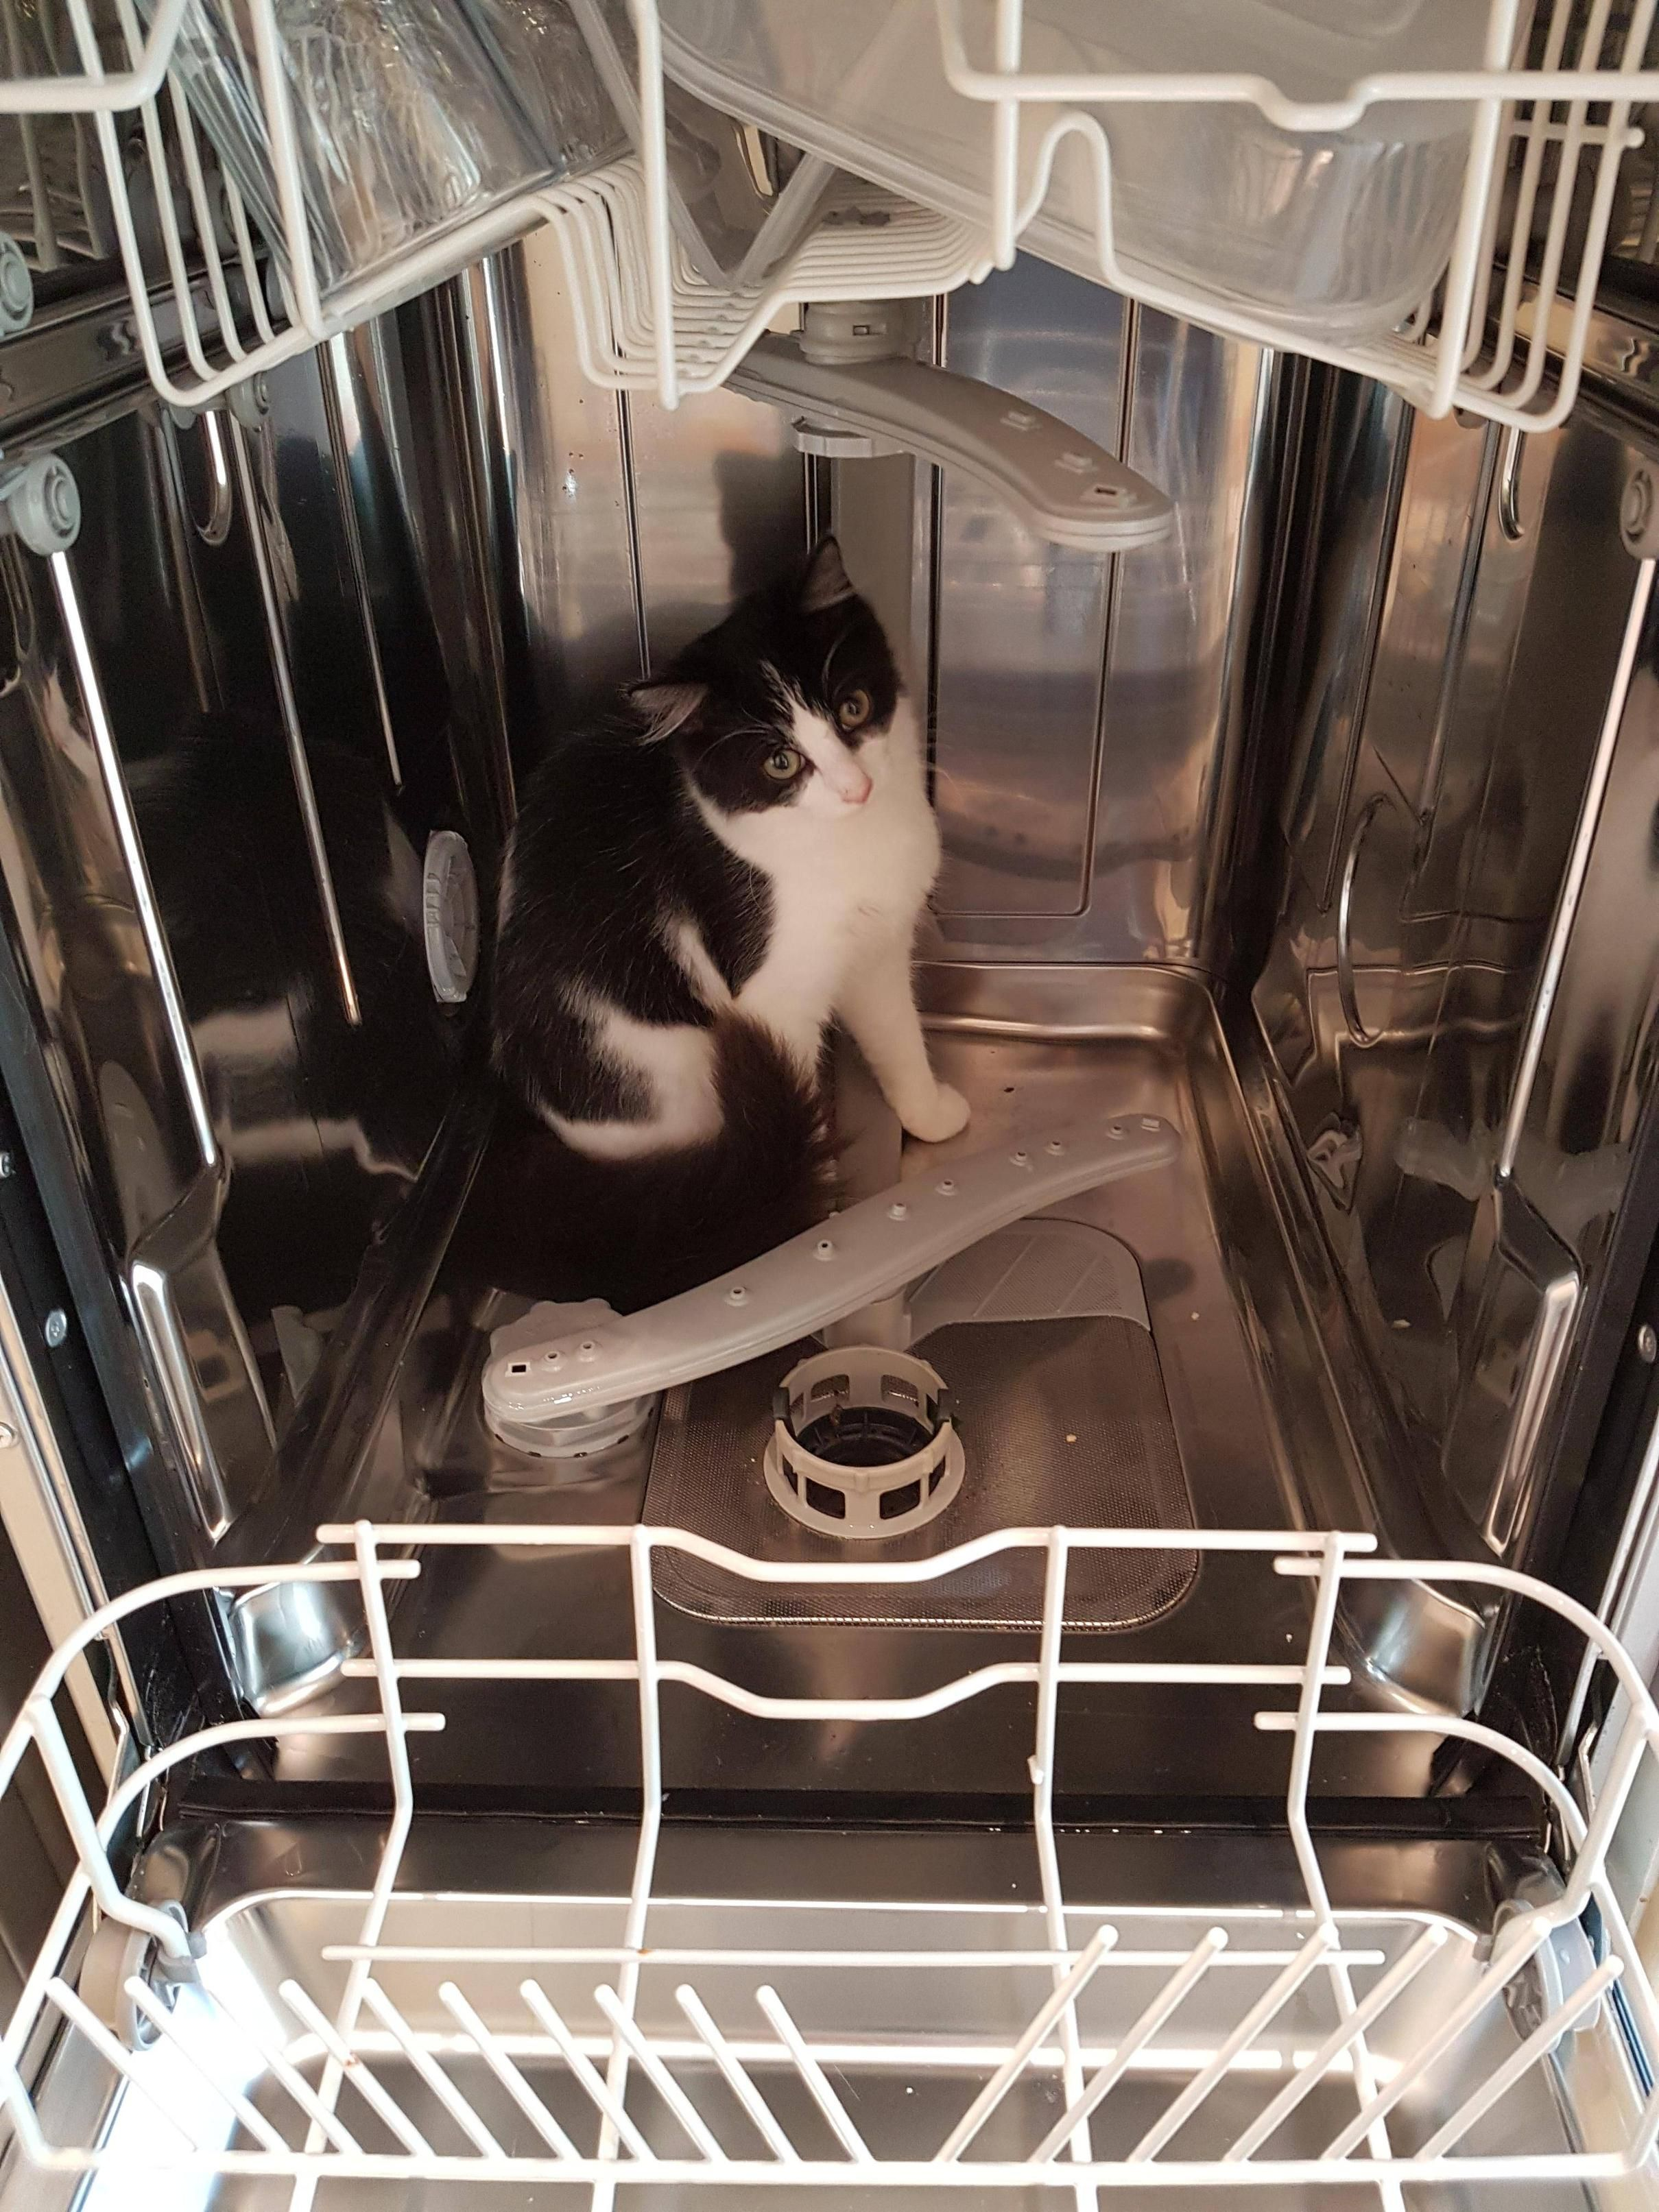 Does anybody know if cats are dishwasher-safe? Poppy seems to think she is